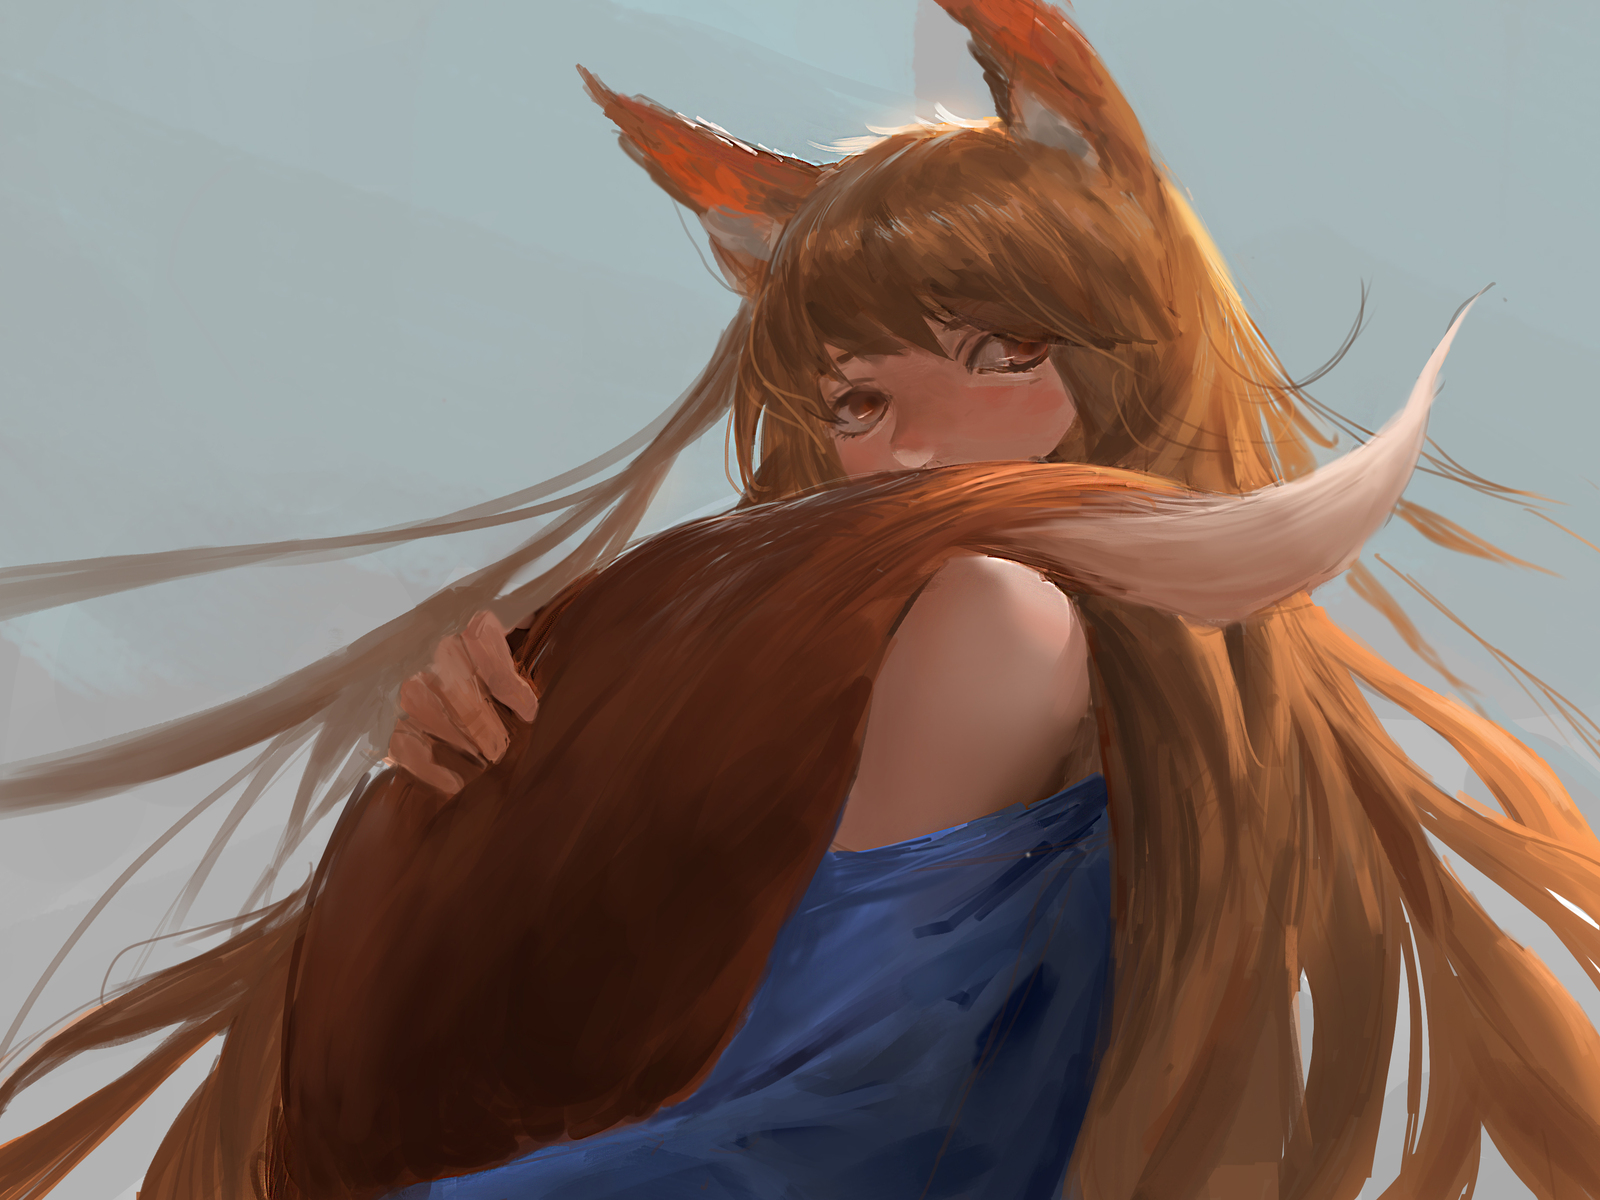 1600x1200 Spice And Wolf Anime 4k 1600x1200 Resolution Hd 4k